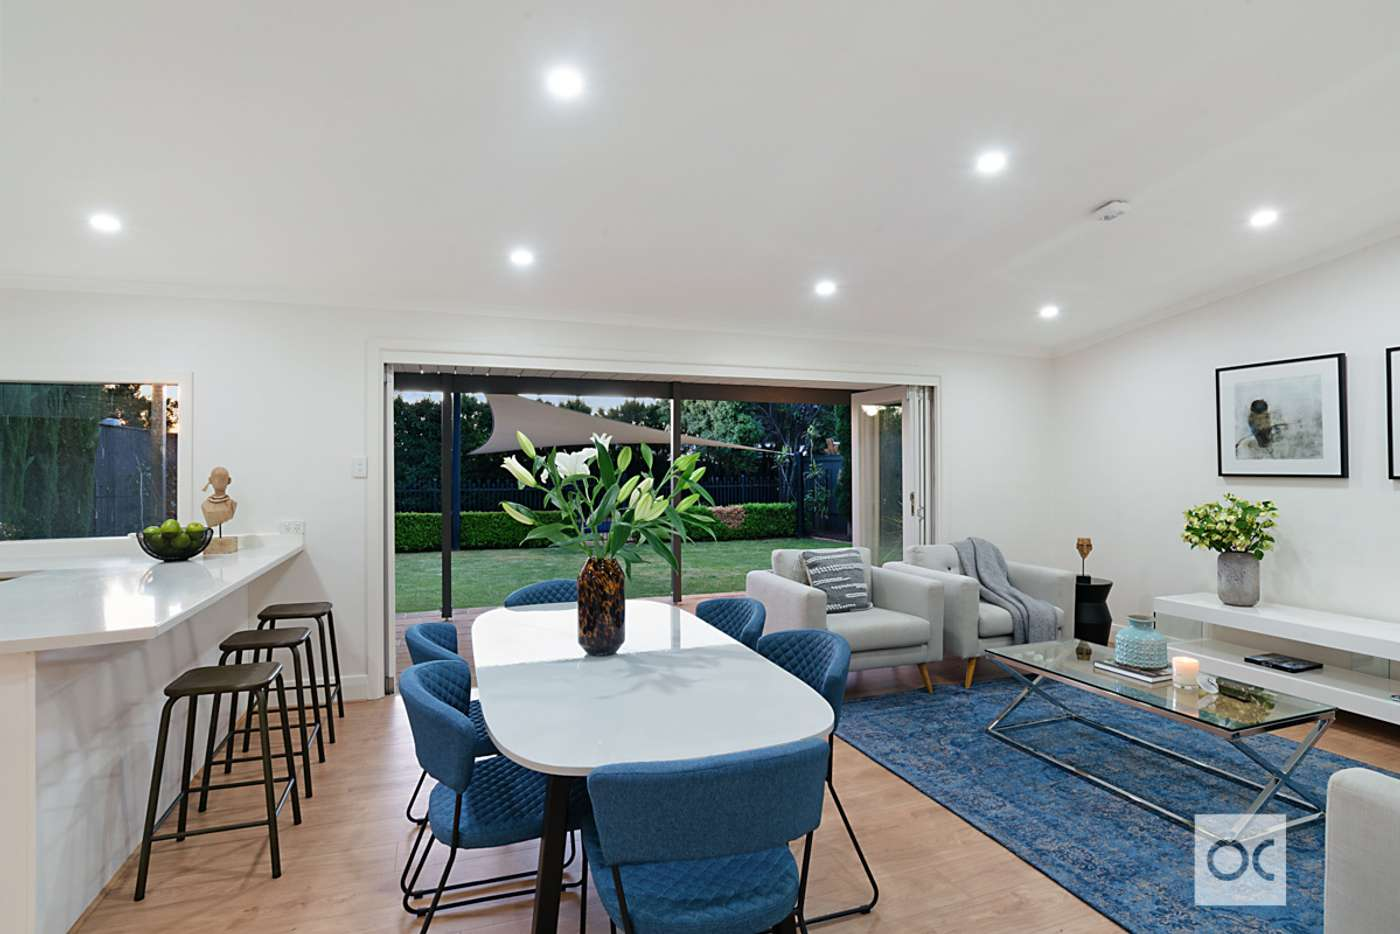 Fifth view of Homely house listing, 82 West Parkway, Colonel Light Gardens SA 5041